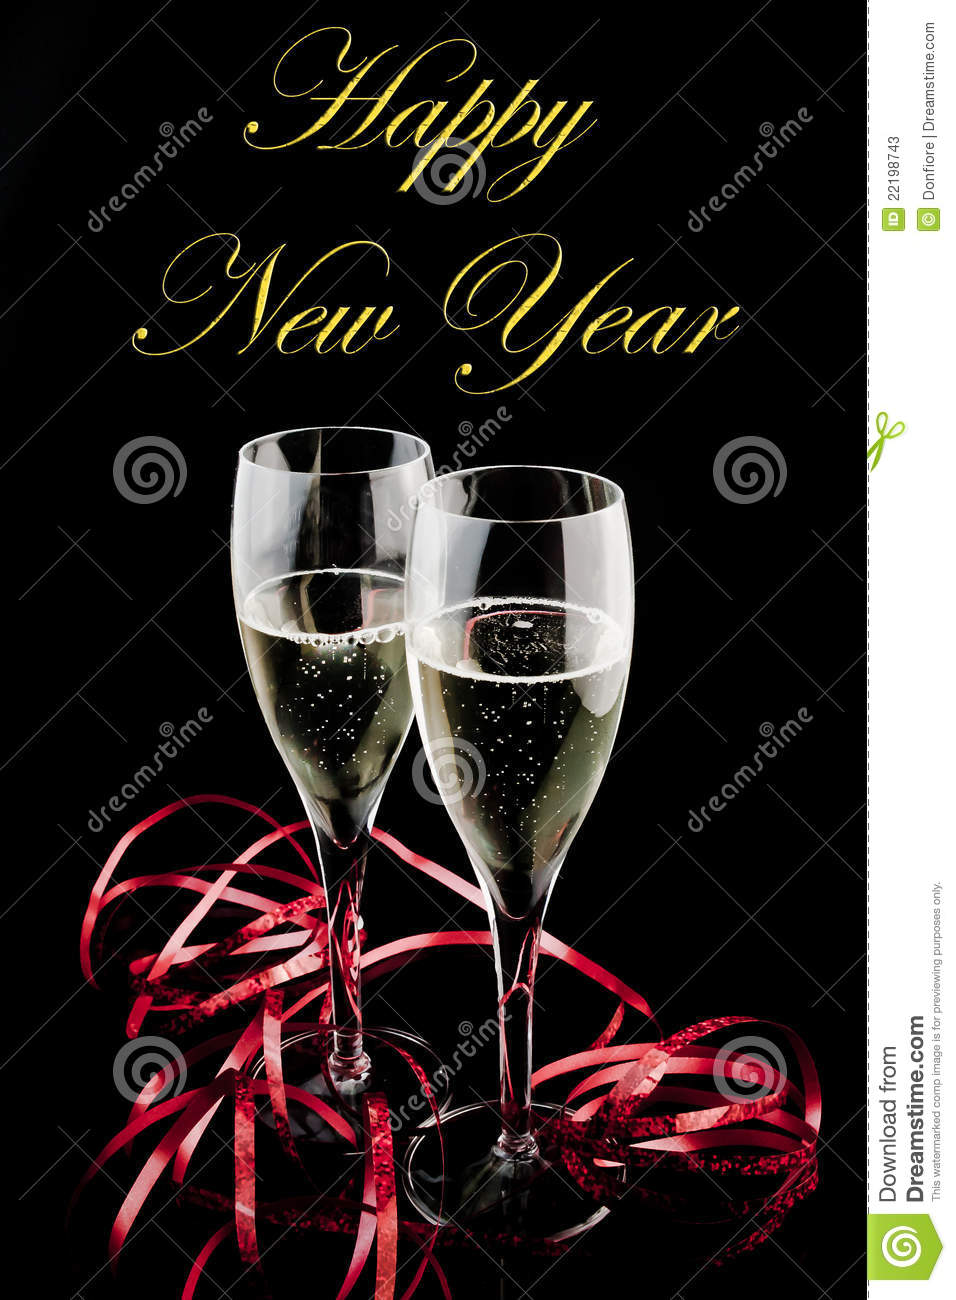 Happy new year with love stock image. Image of holiday - 22198743